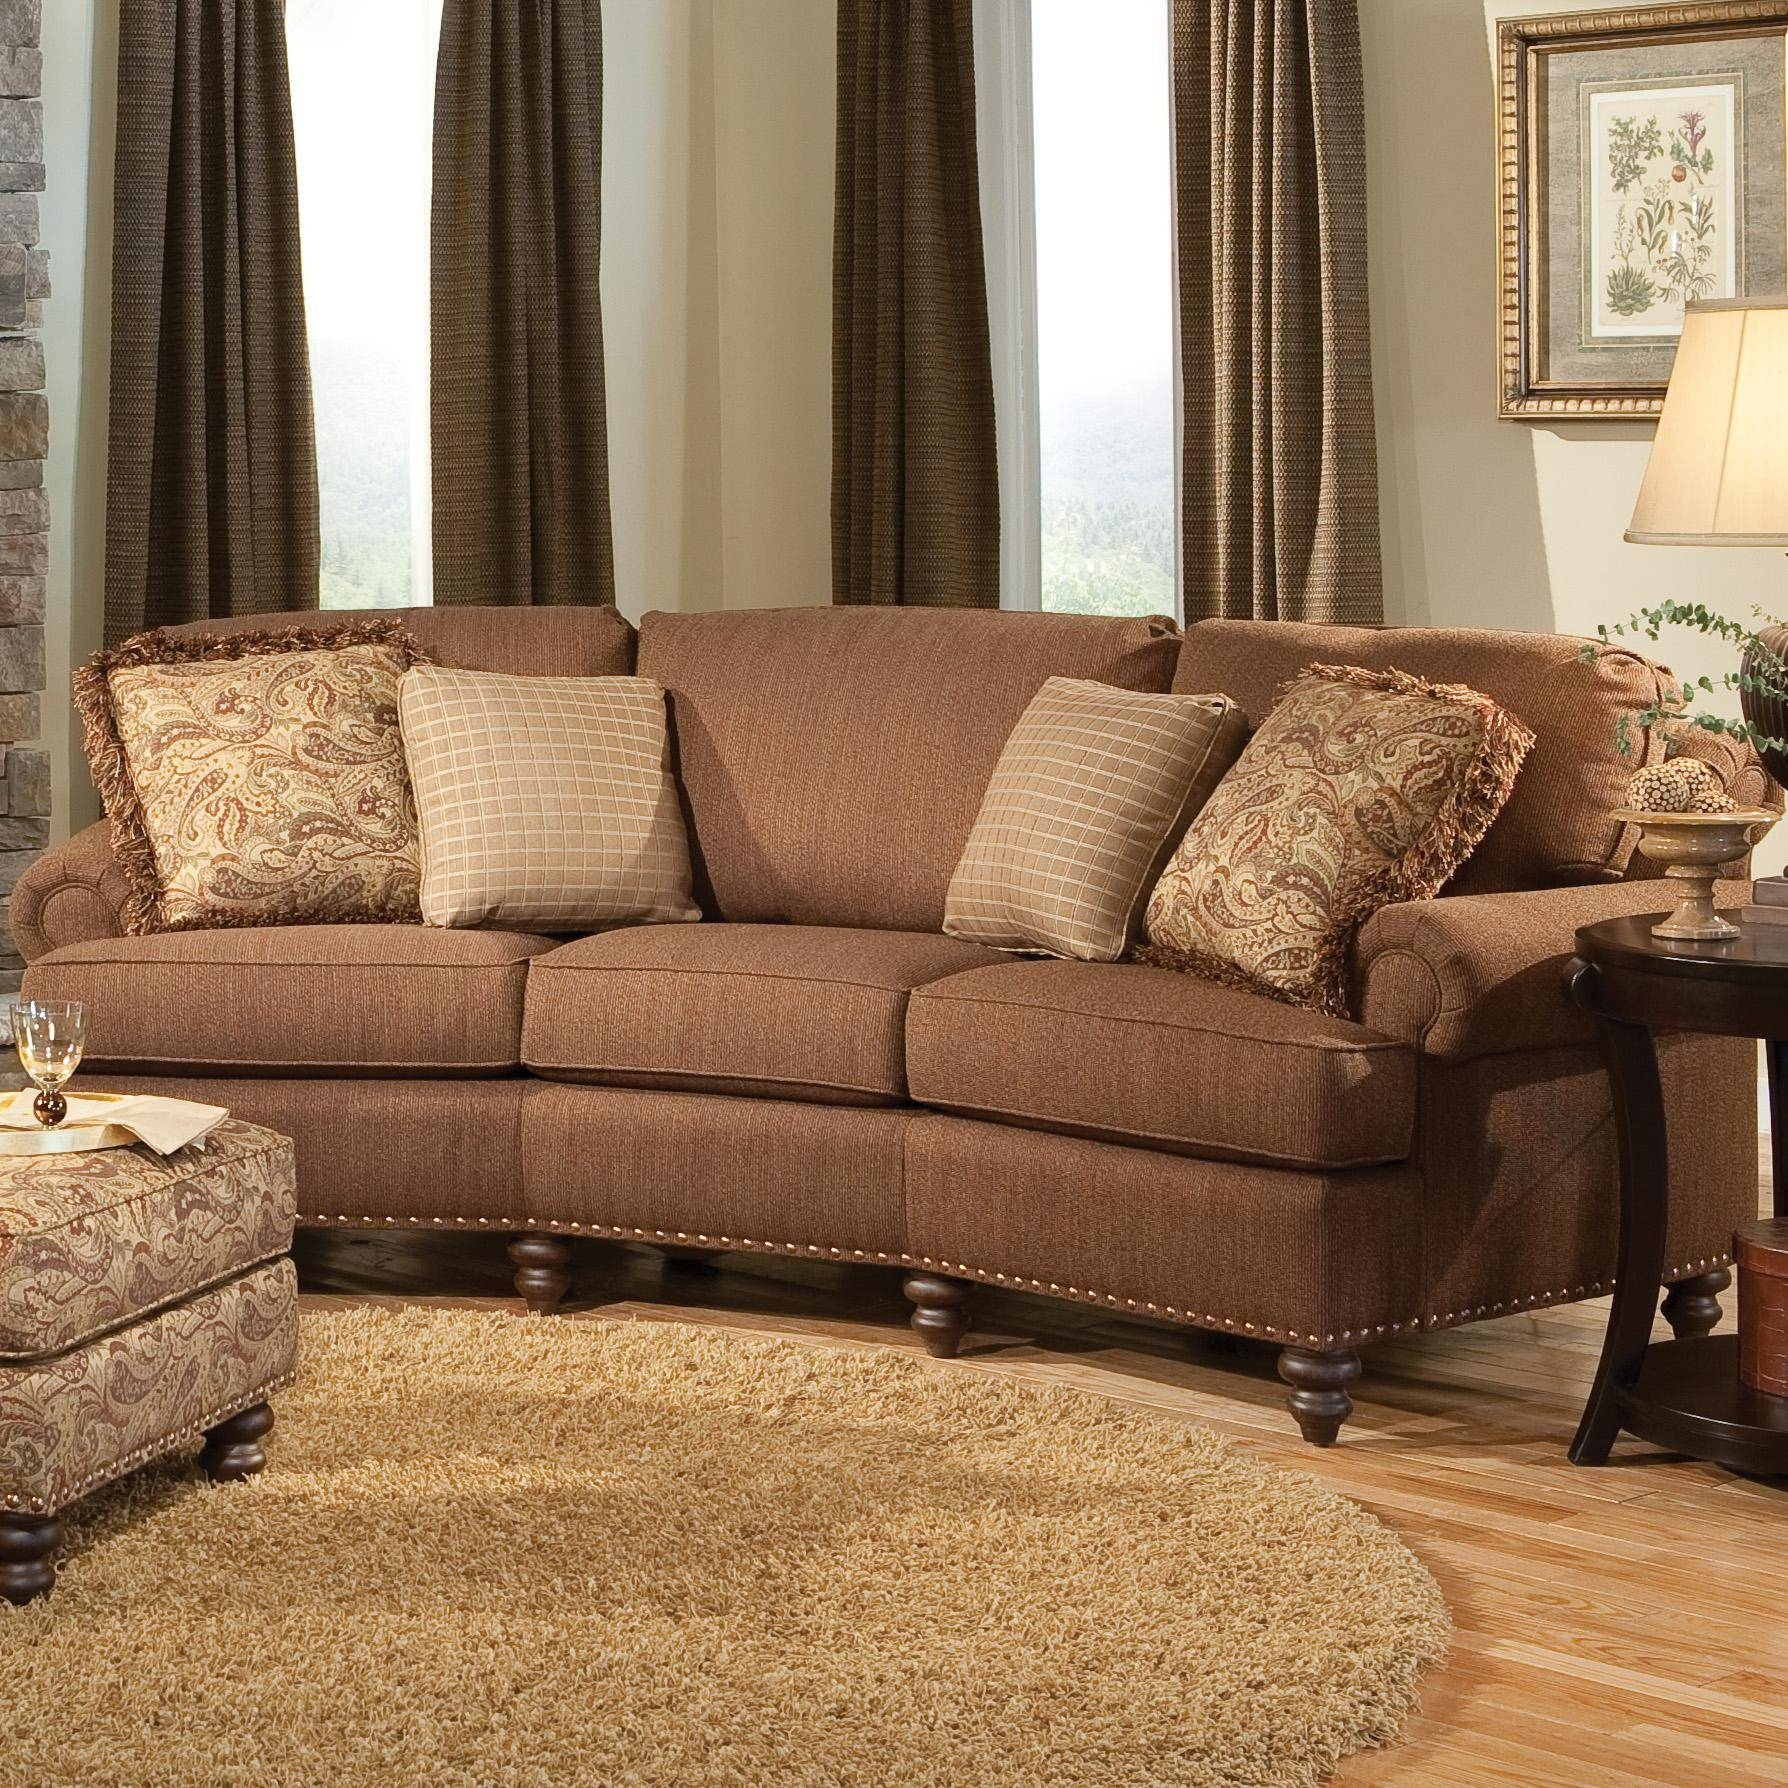 Curved Conversational Sofa With Nailhead Trimsmith Brothers in Smith Brothers Sofas (Image 2 of 15)